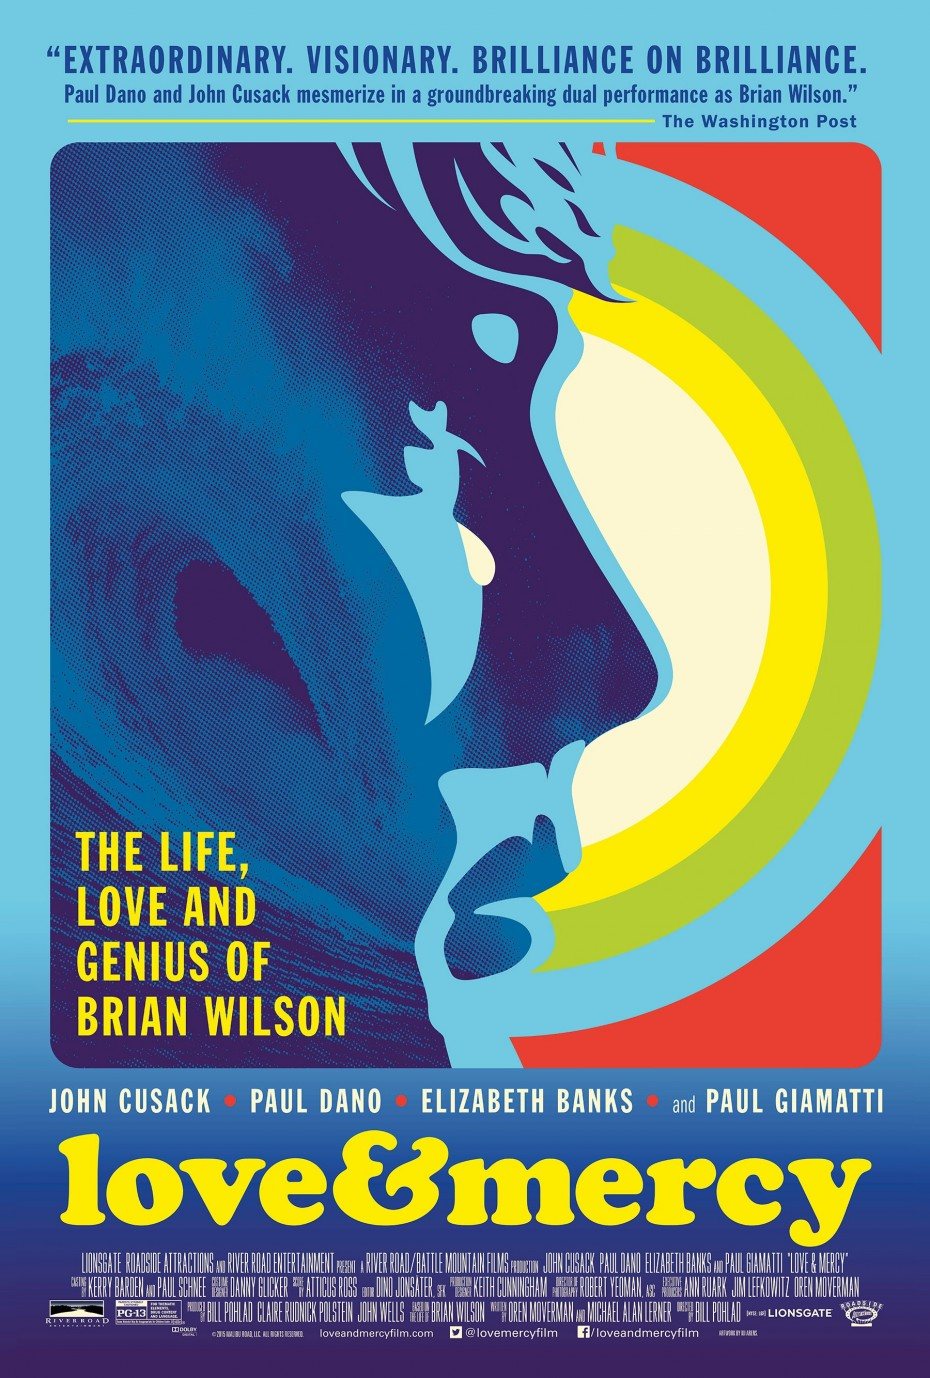 """The official movie poster for """"Love & Mercy,"""" designed by Kii Arens [lalalandprints.com]"""